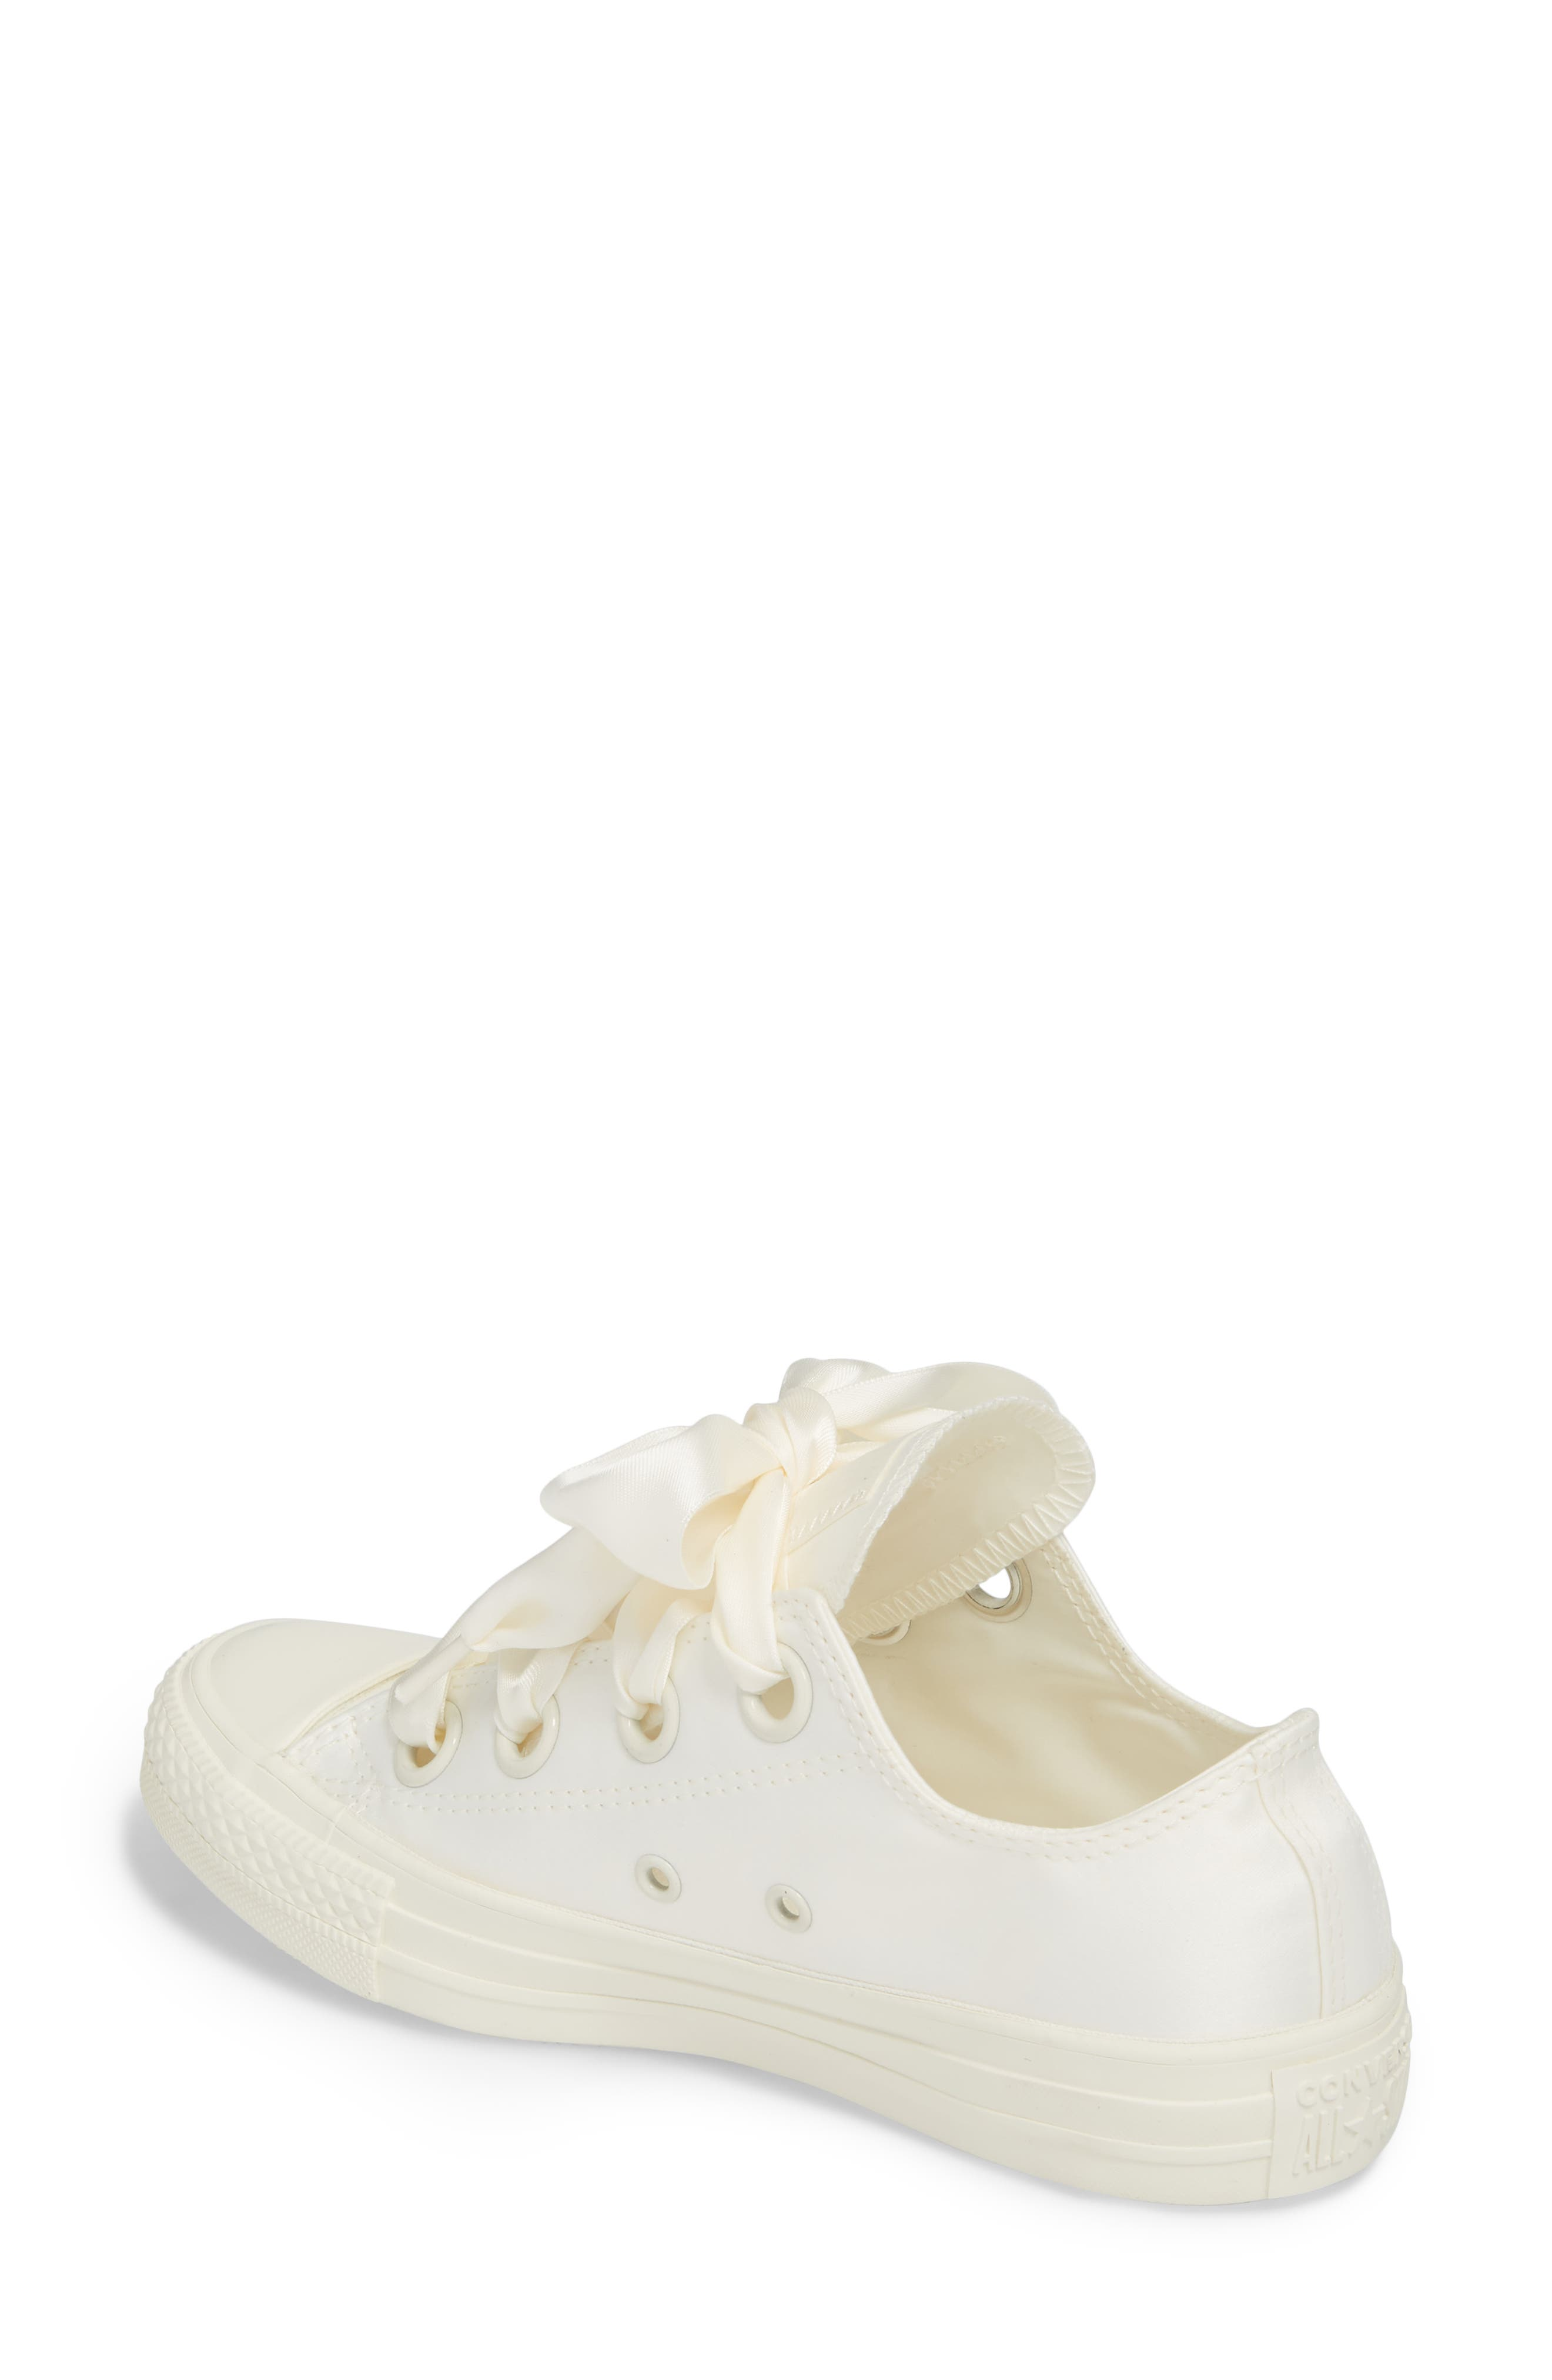 Chuck Taylor<sup>®</sup> All Star<sup>®</sup> Big Eyelet Ox Sneaker,                             Alternate thumbnail 2, color,                             Egret/ Egret